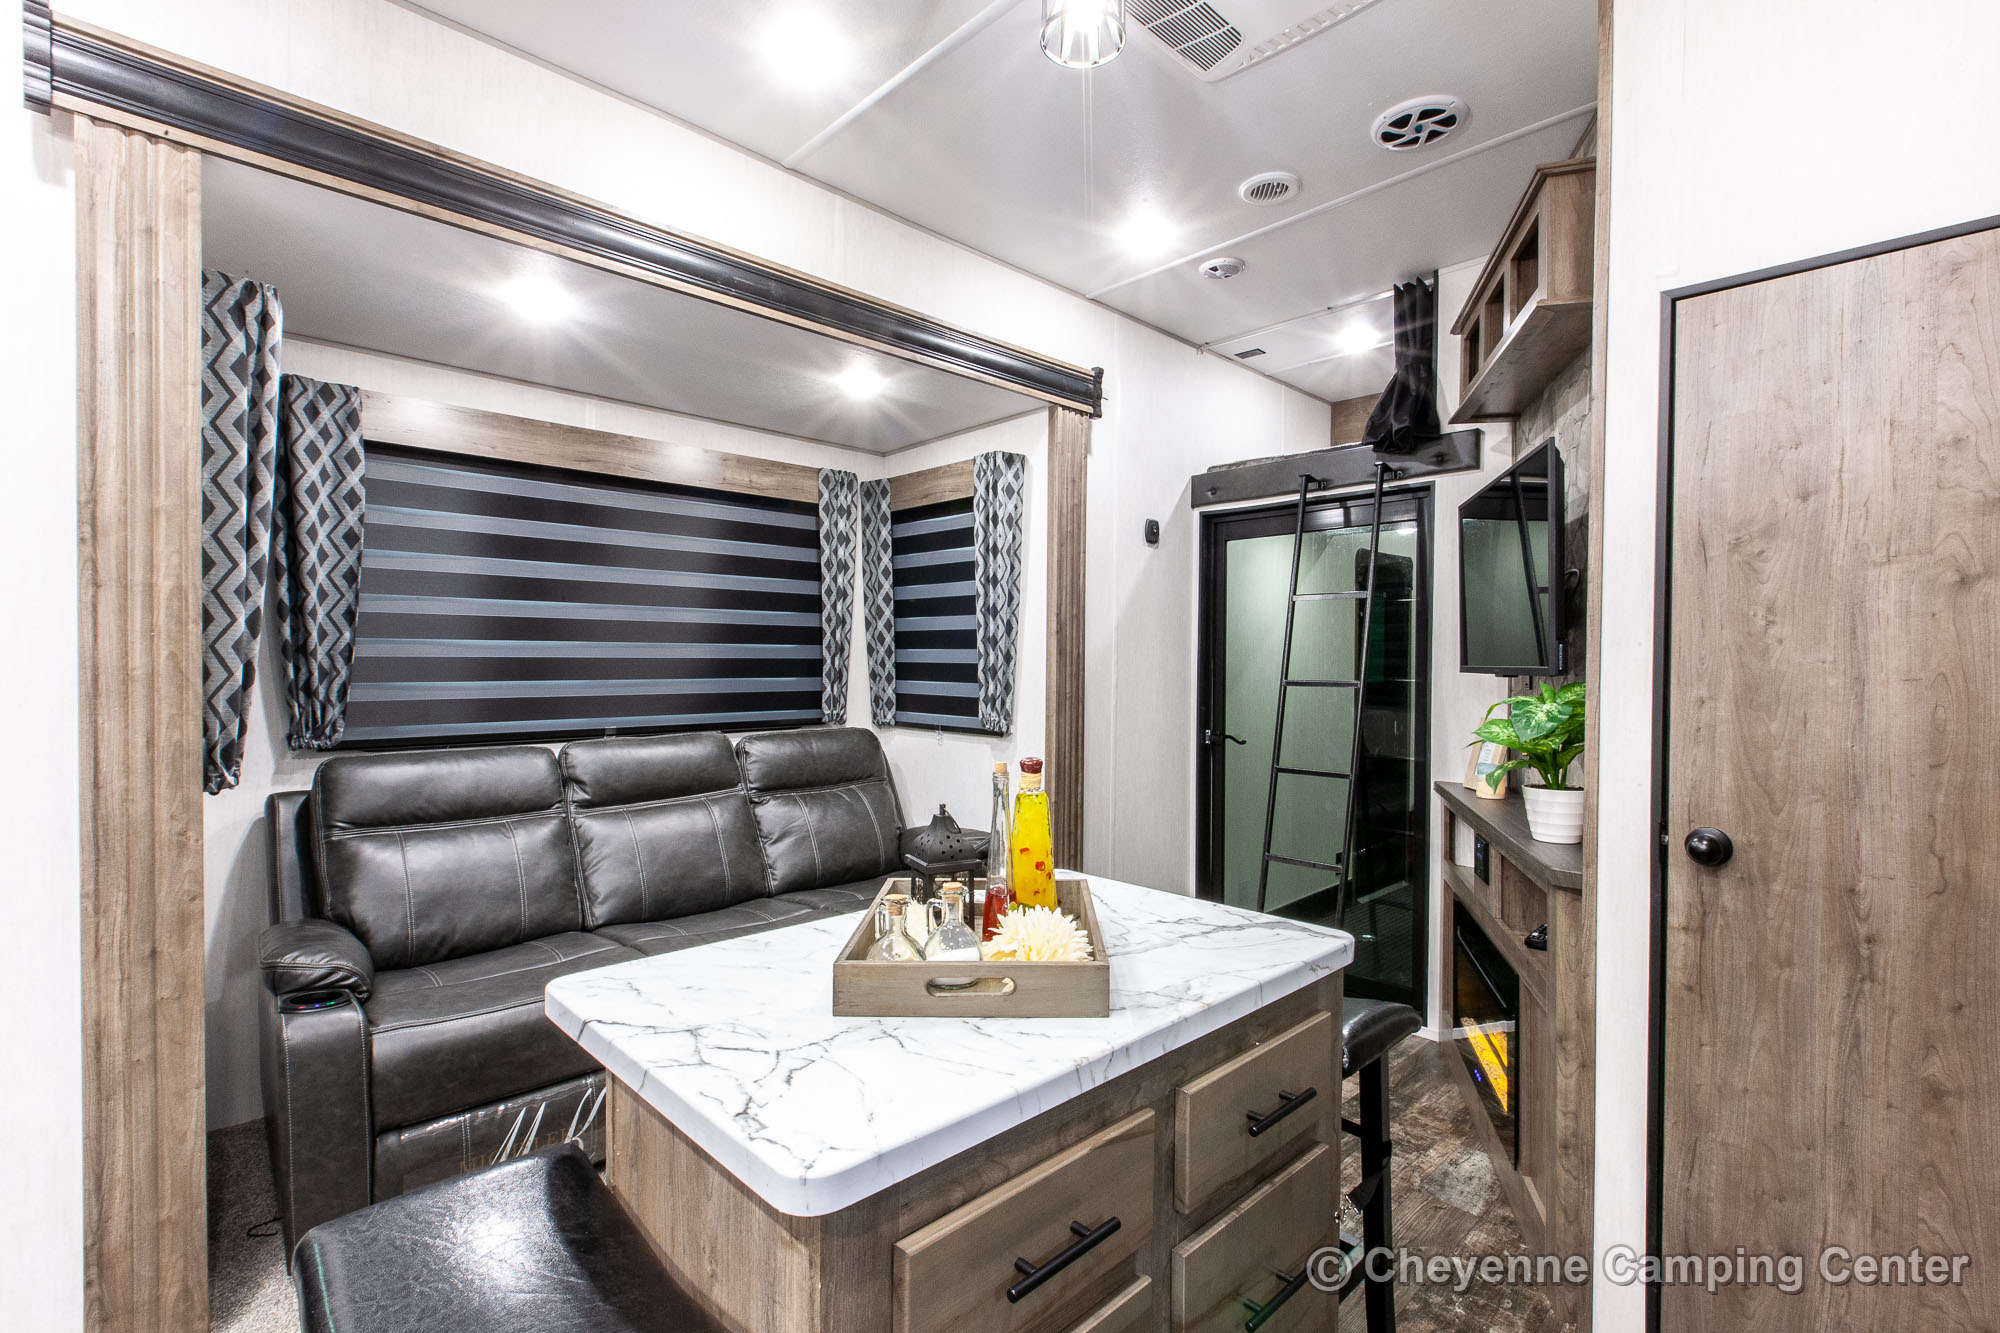 2022 Forest River Cherokee Wolf Pack 355PACK14 Bunkhouse Toy Hauler Fifth Wheel Interior Image